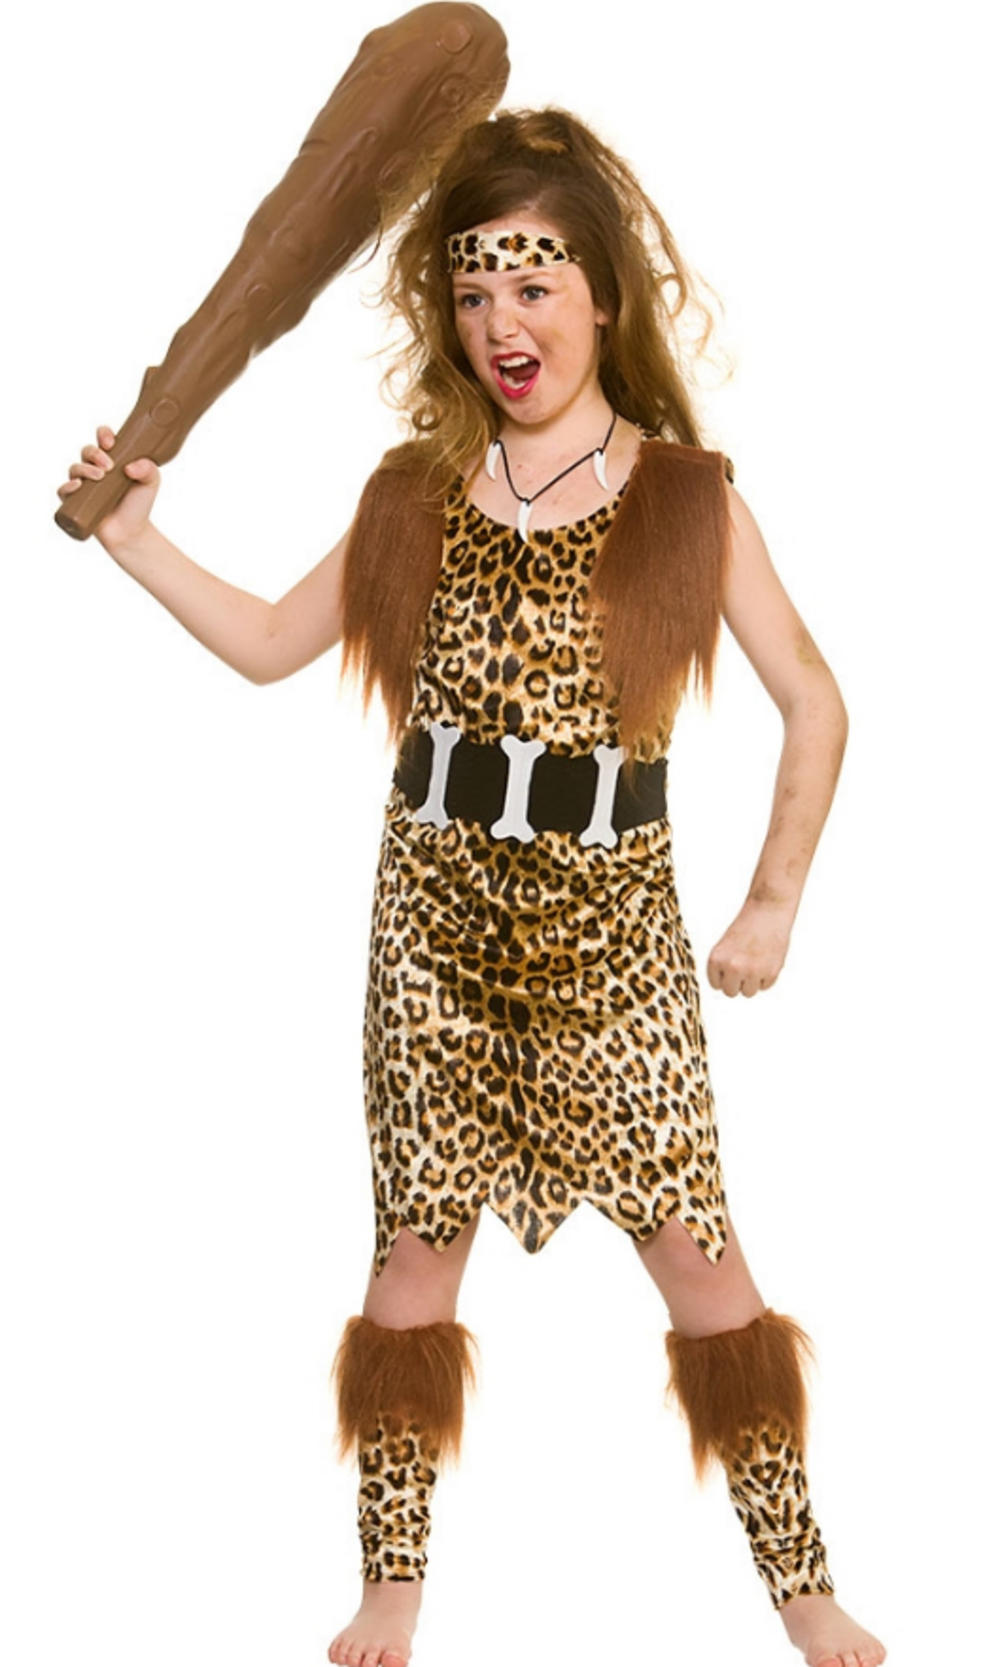 Stone Age Cave Girl Kids Costume  Girls World Book Day -9866